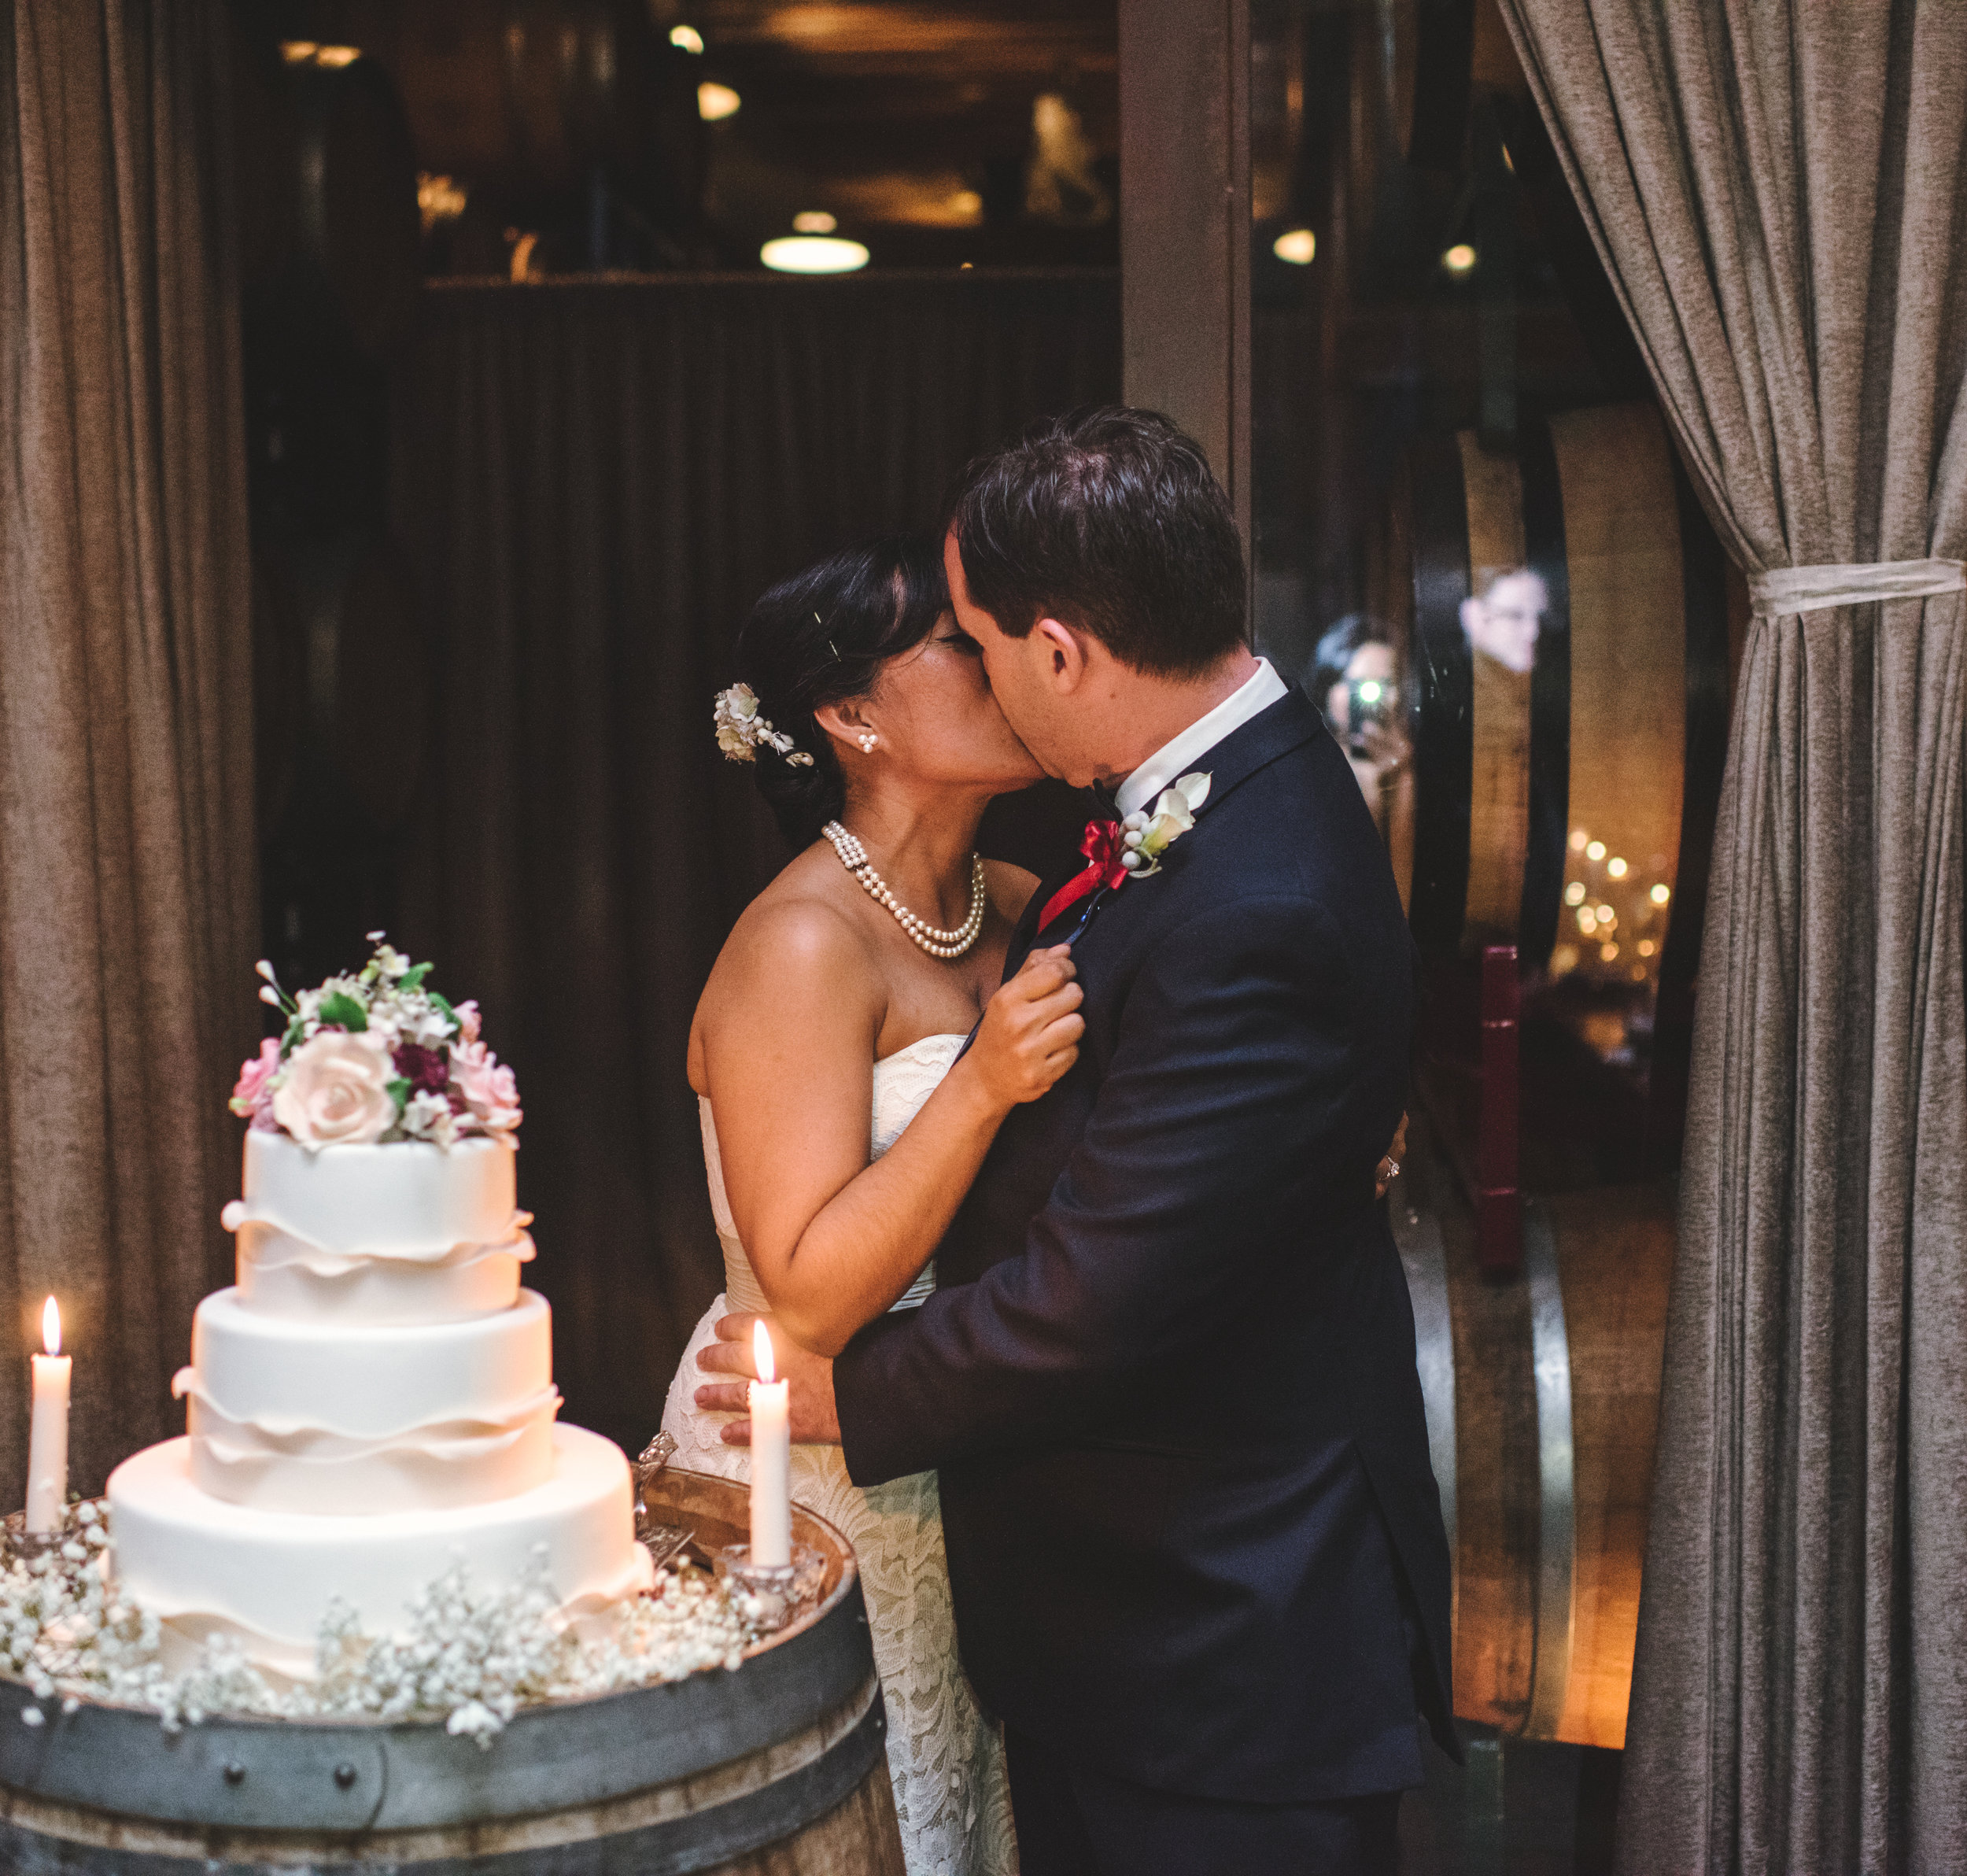 BROOKLYN WINERY WEDDING - TWOTWENTY by CHI-CHI AGBIM-424.jpg